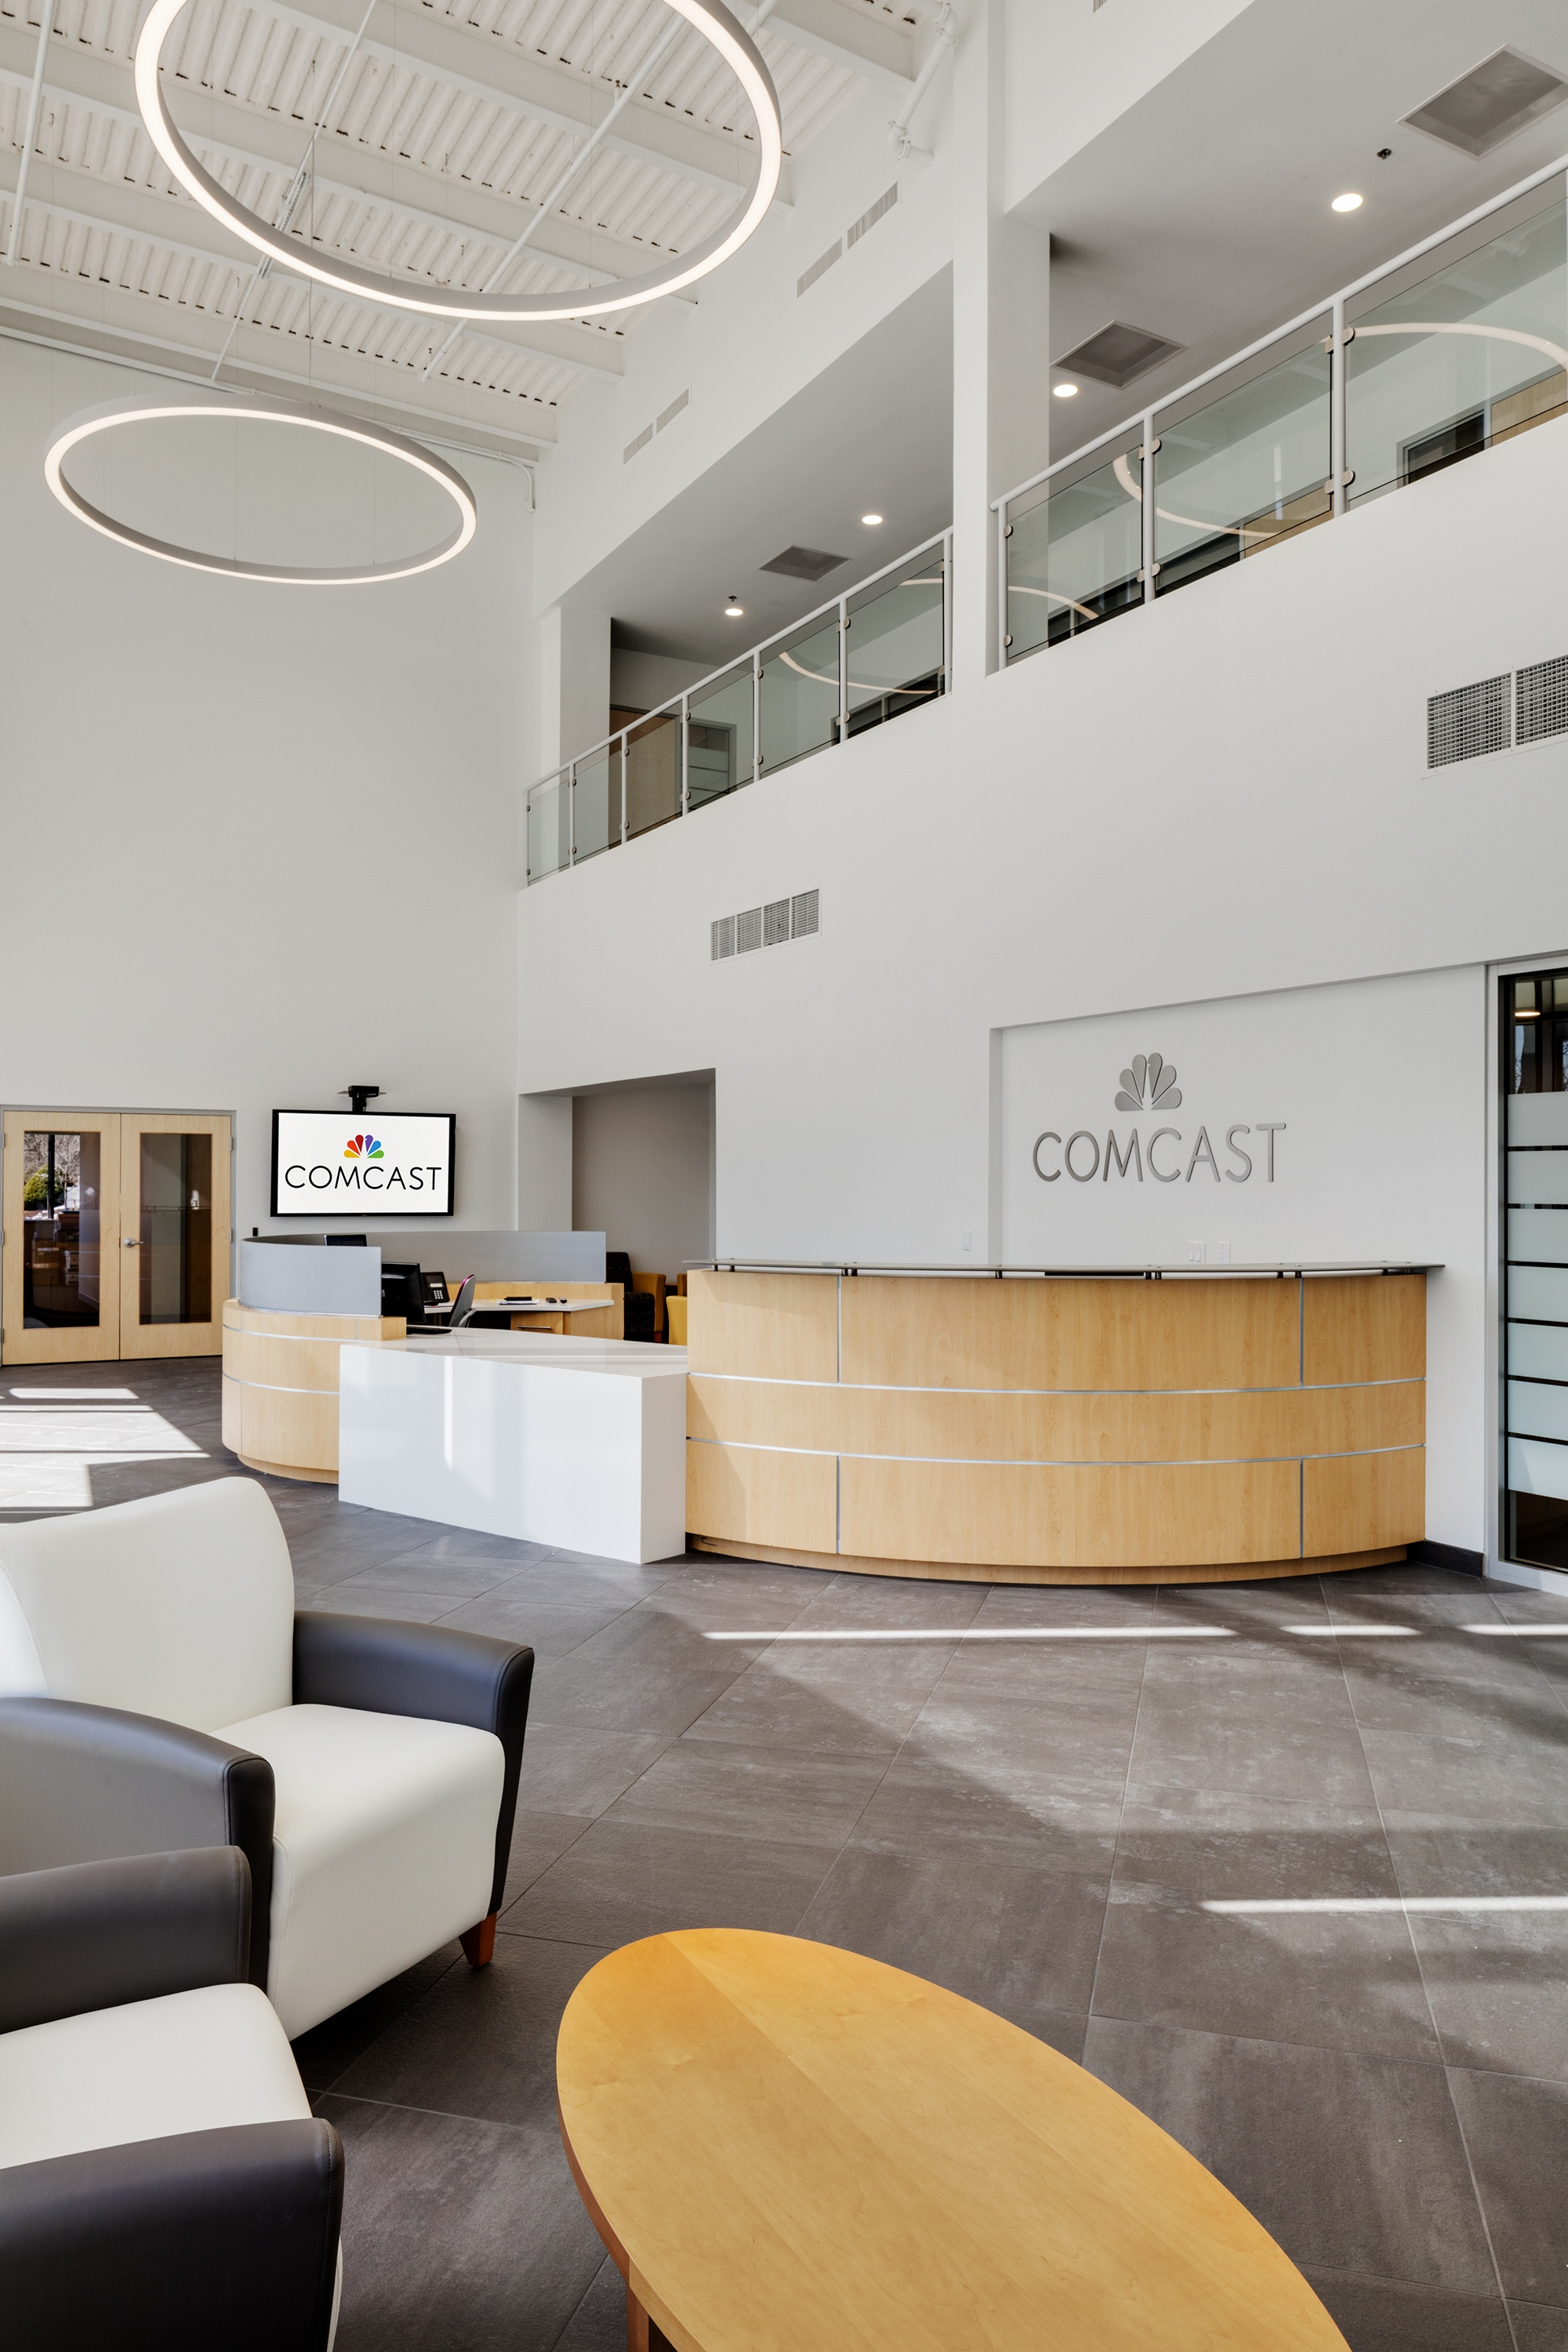 Comcast Lobby Renovation